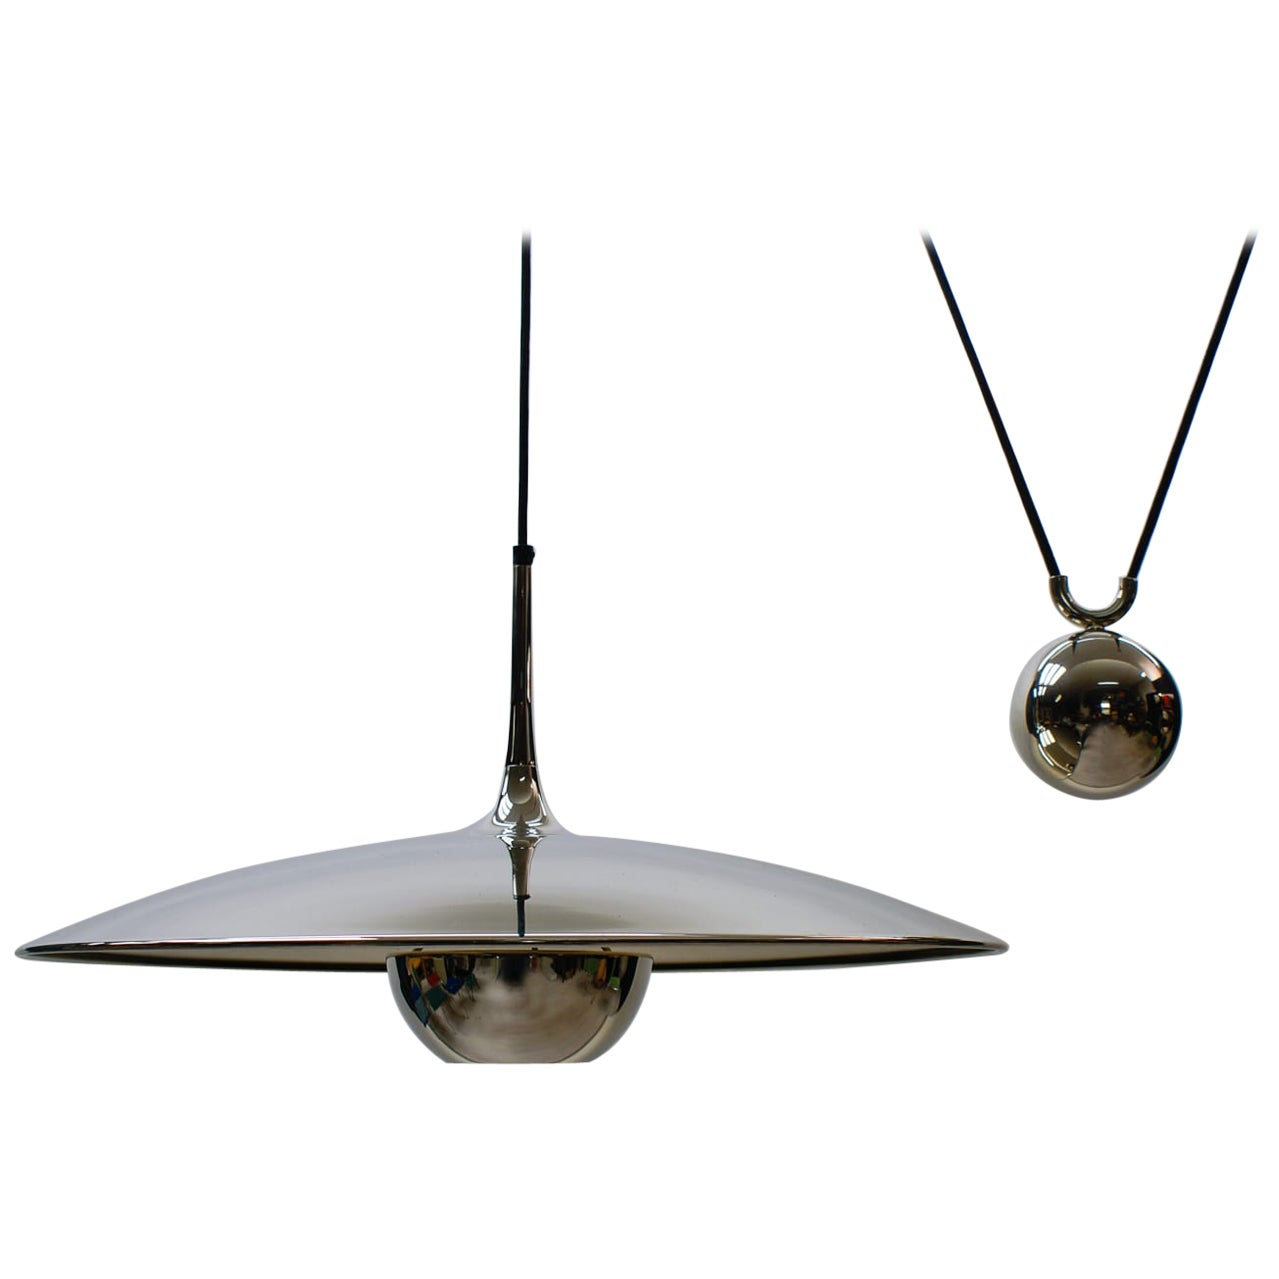 Florian Schulz Brass Onos Pendant with Counterweight, Germany, 1970s